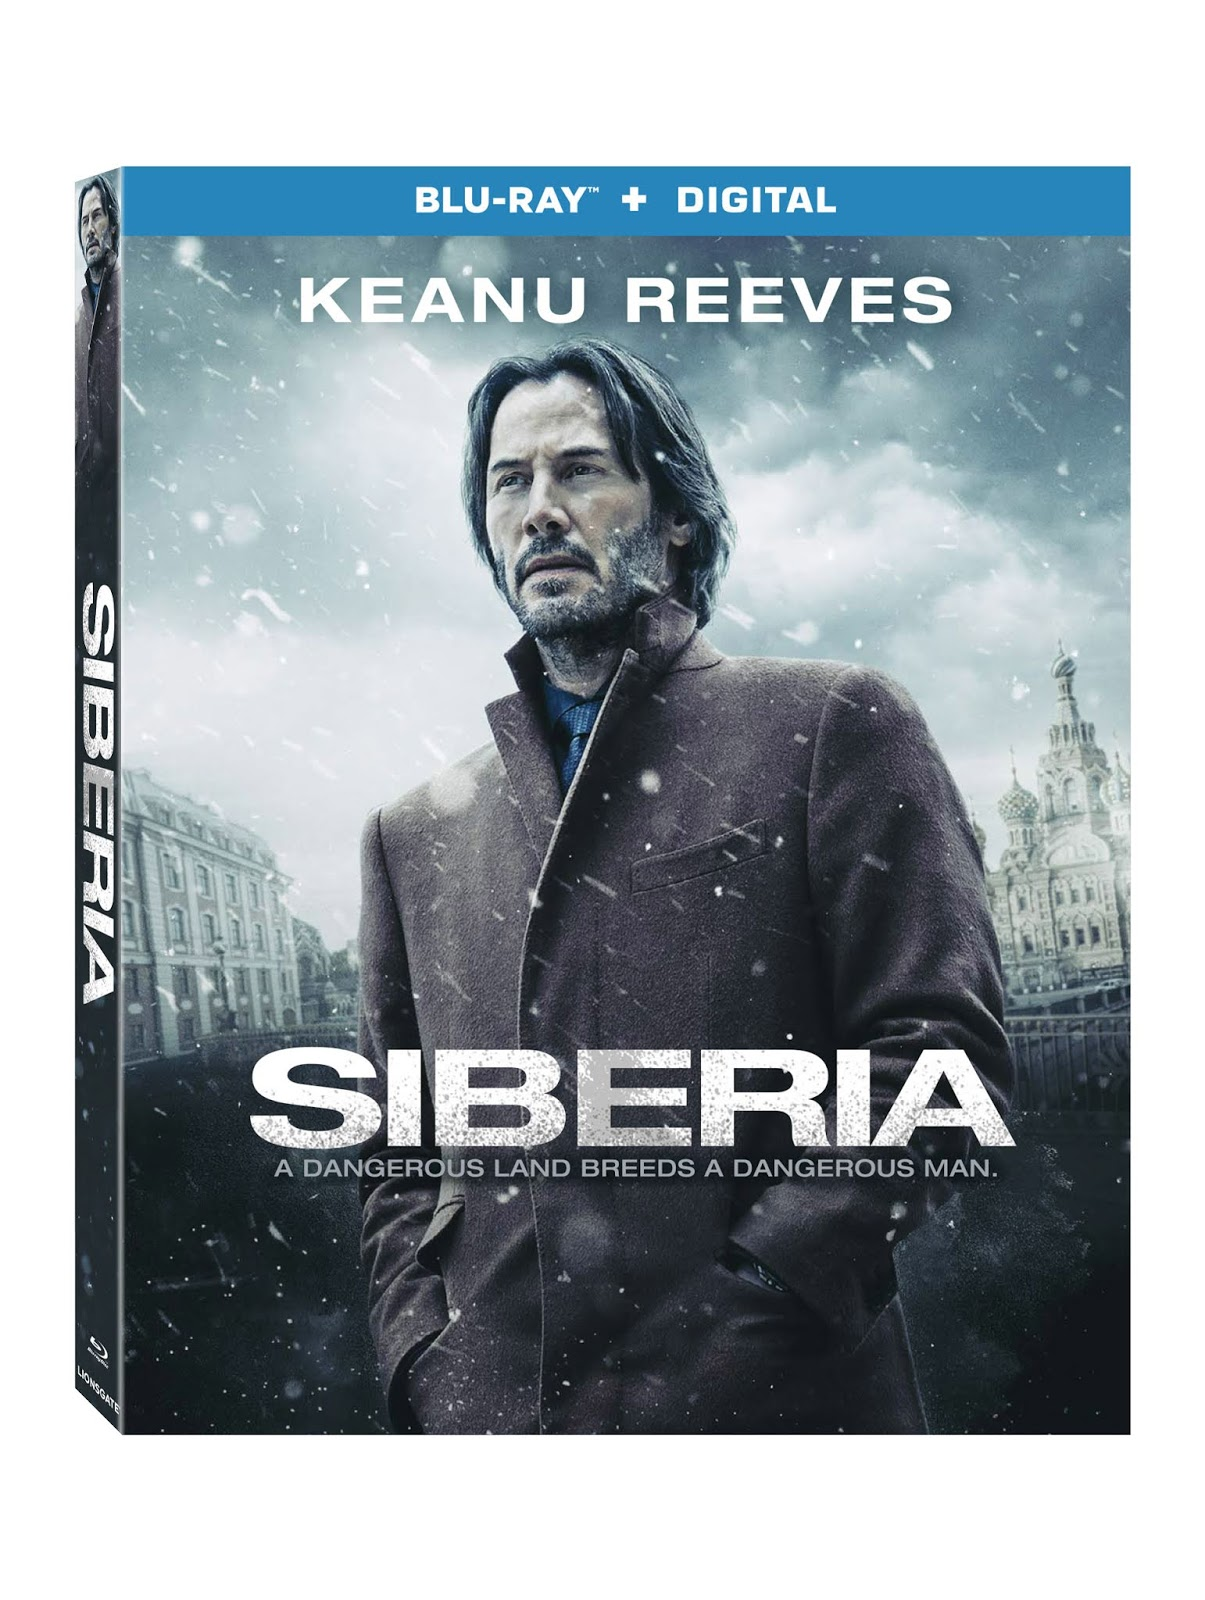 Keanu Reeves Stars In Siberia Arriving On Blu Ray Plus Digital Catriona Maika Top Handle Bag Black The Gripping Thriller Dvd And September 18 From Lionsgate